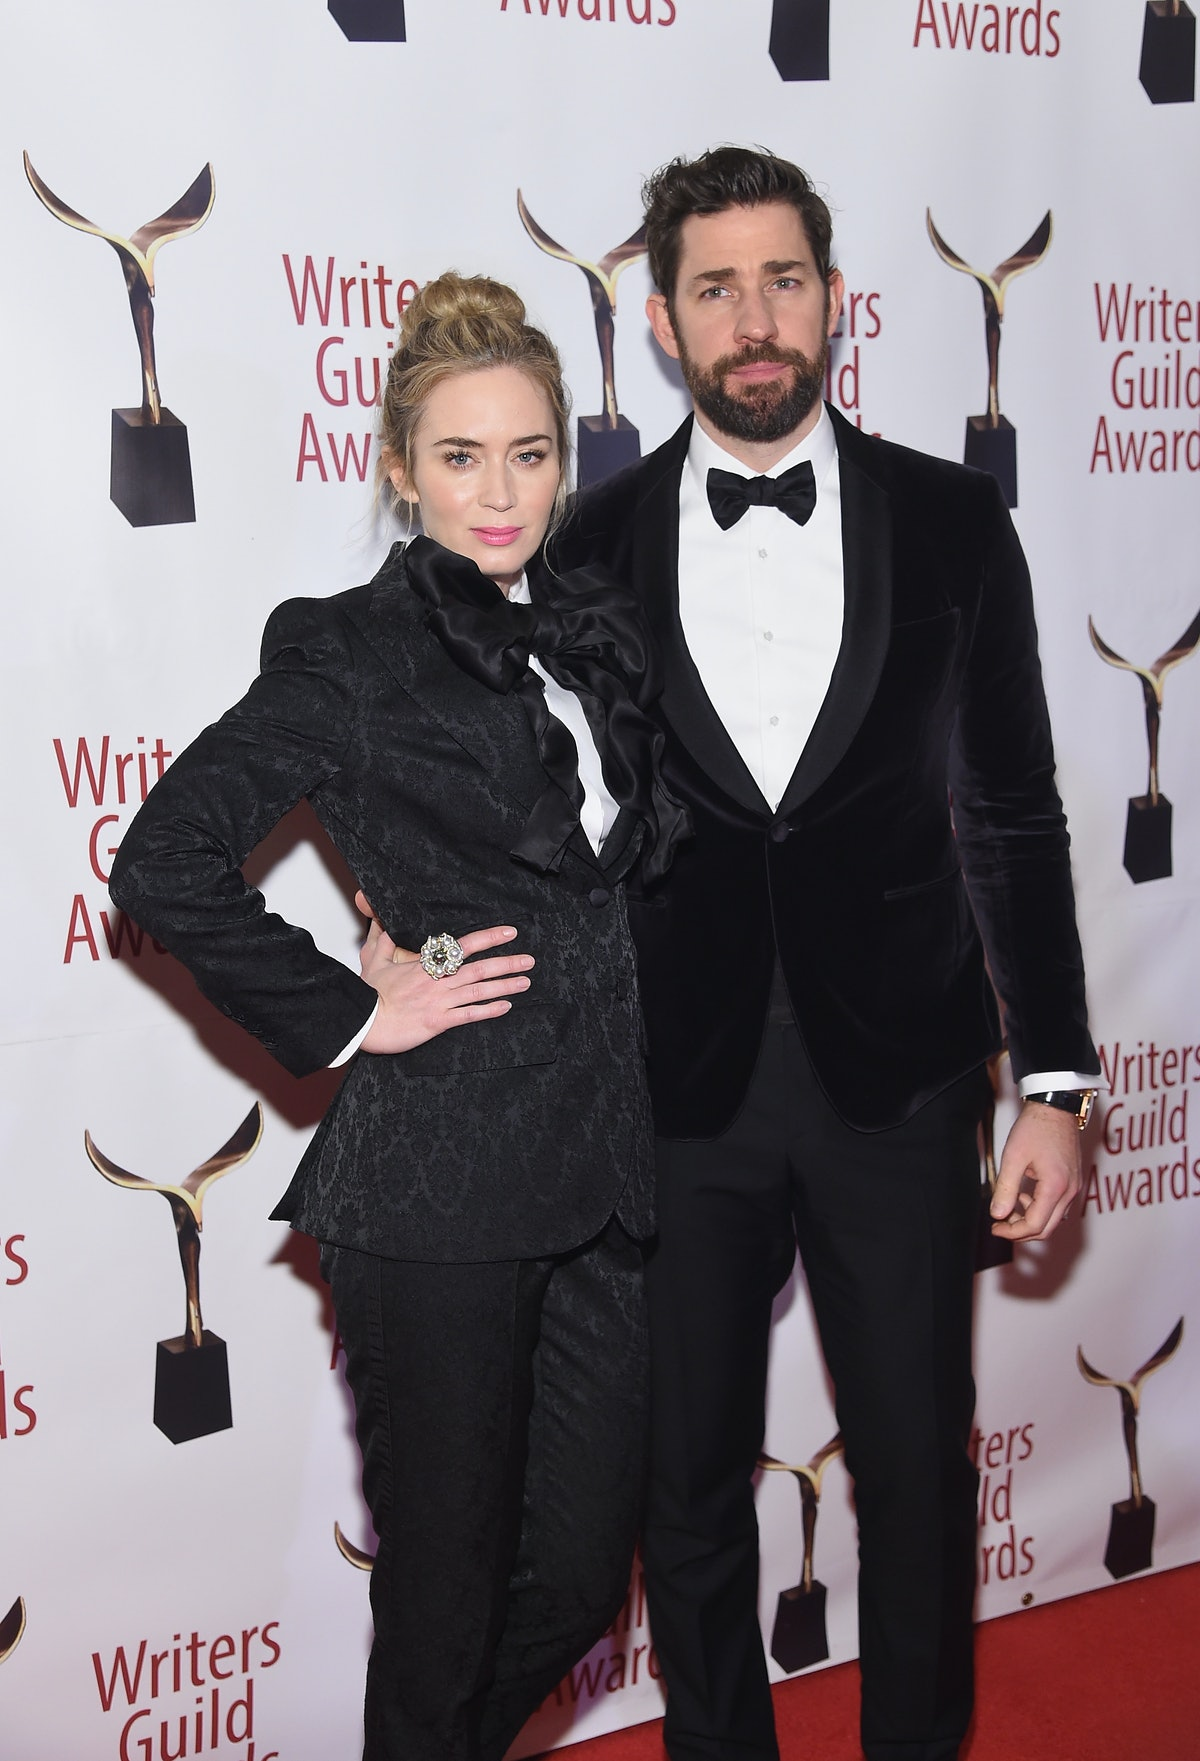 Emily Blunt & John Krasinski Wearing Matching Tuxedos At The 2019 Writers' Guild Awards Is The Most Adorable